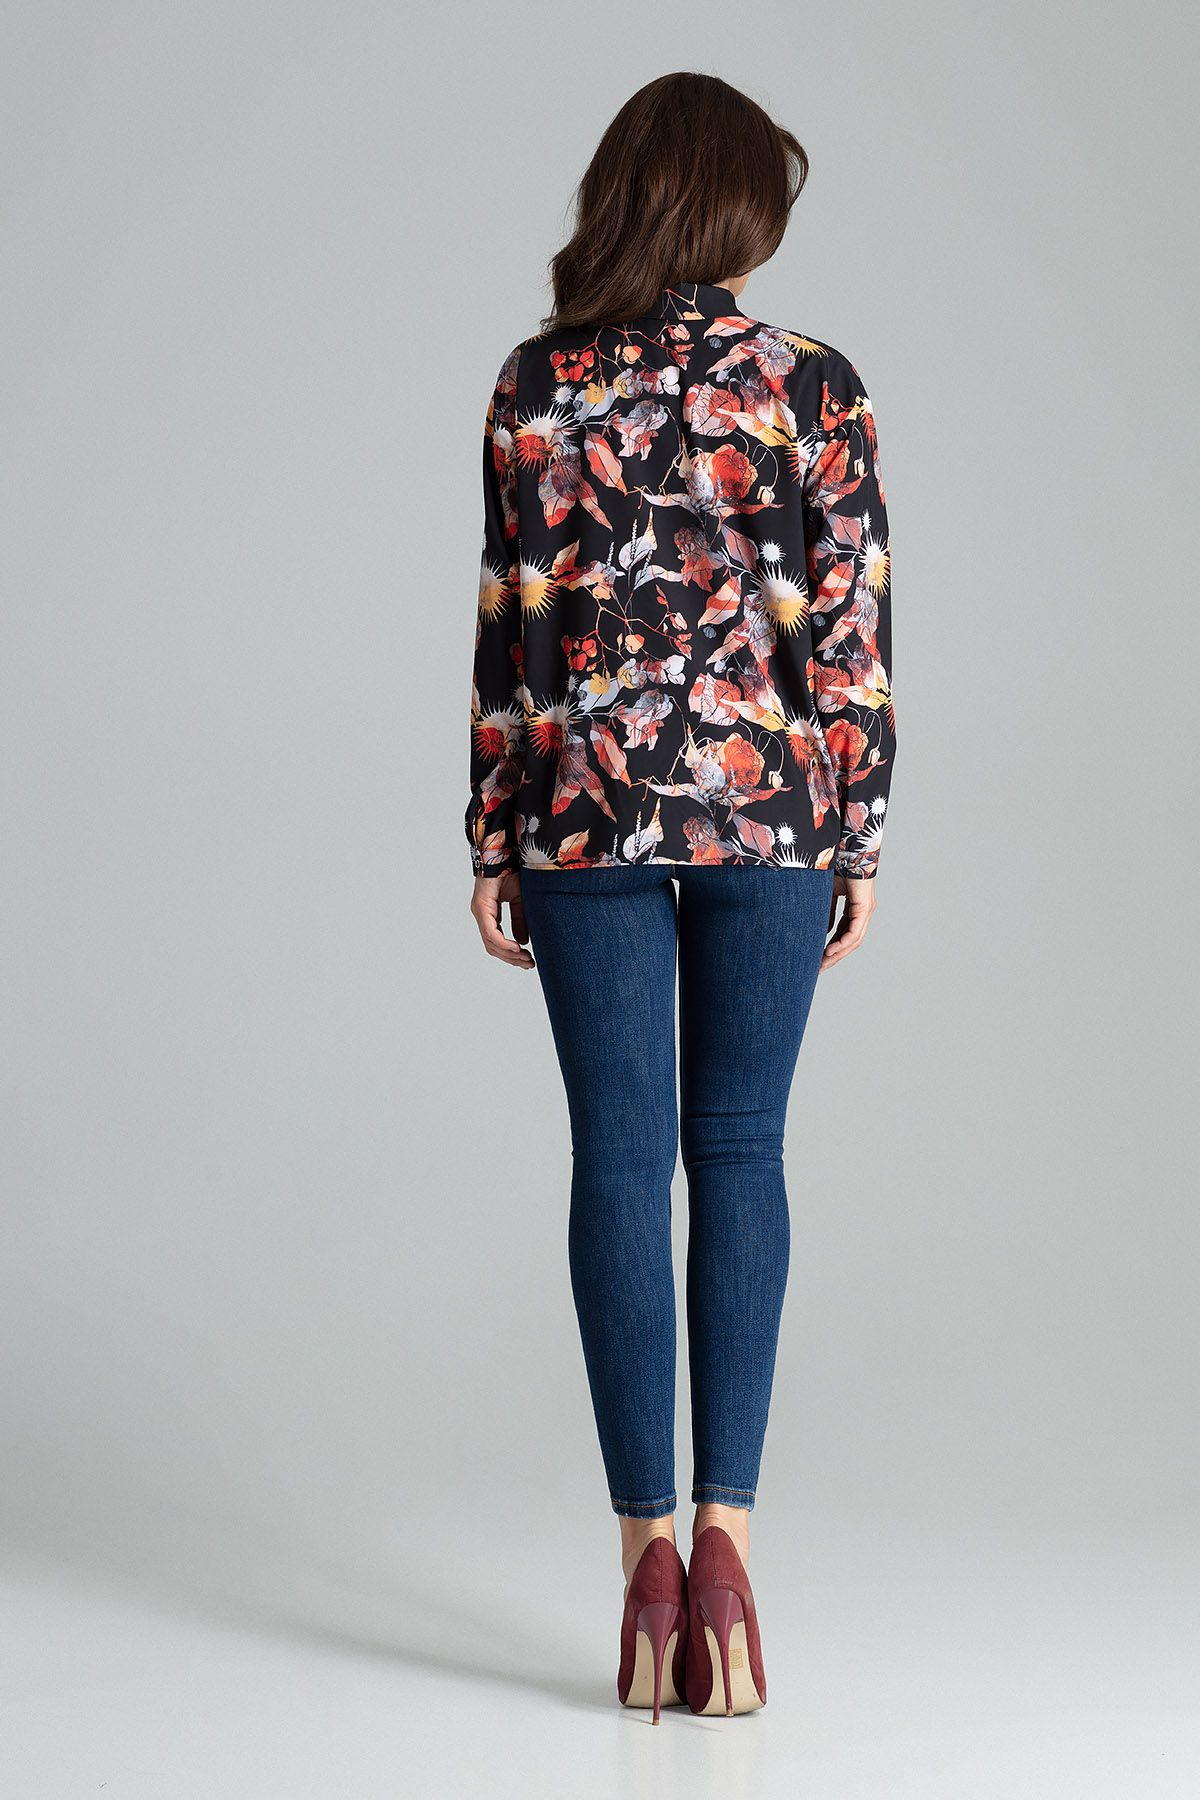 Floral Print Classic Blouse With a Collar